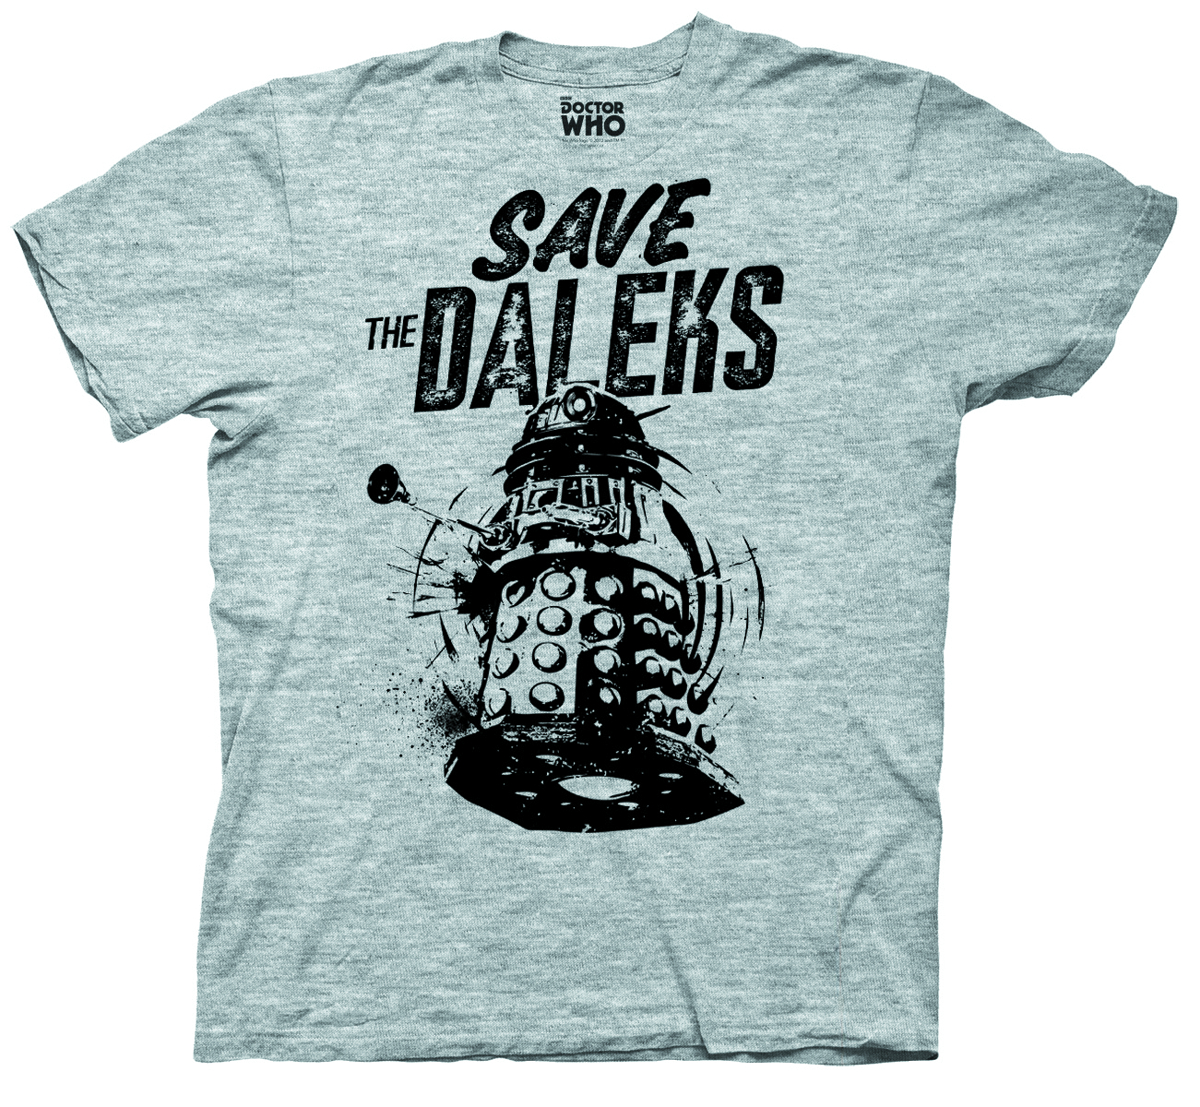 DOCTOR WHO SAVE THE DALEKS GRAY T/S SM